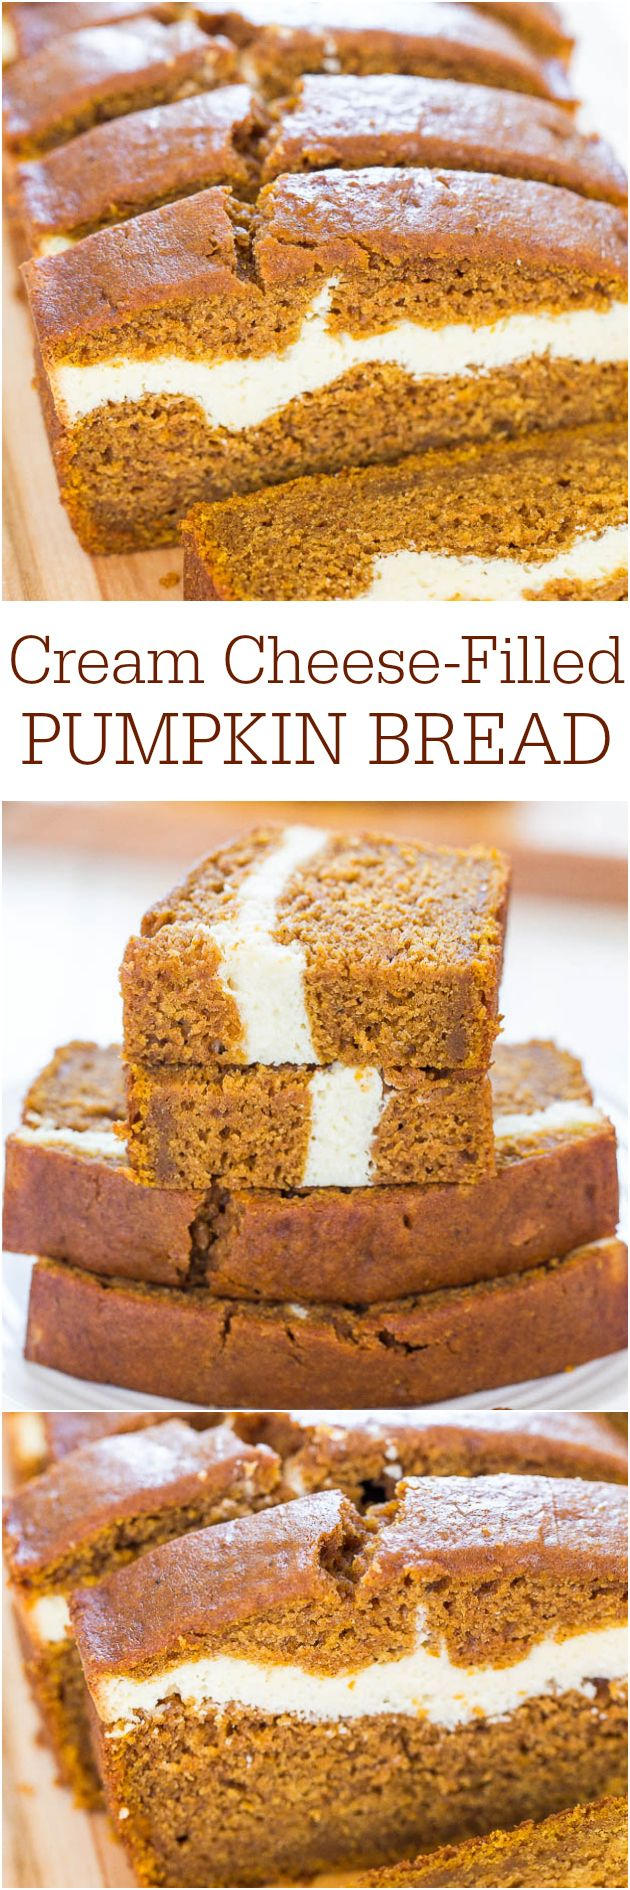 Cream Cheese-Filled Pumpkin Bread